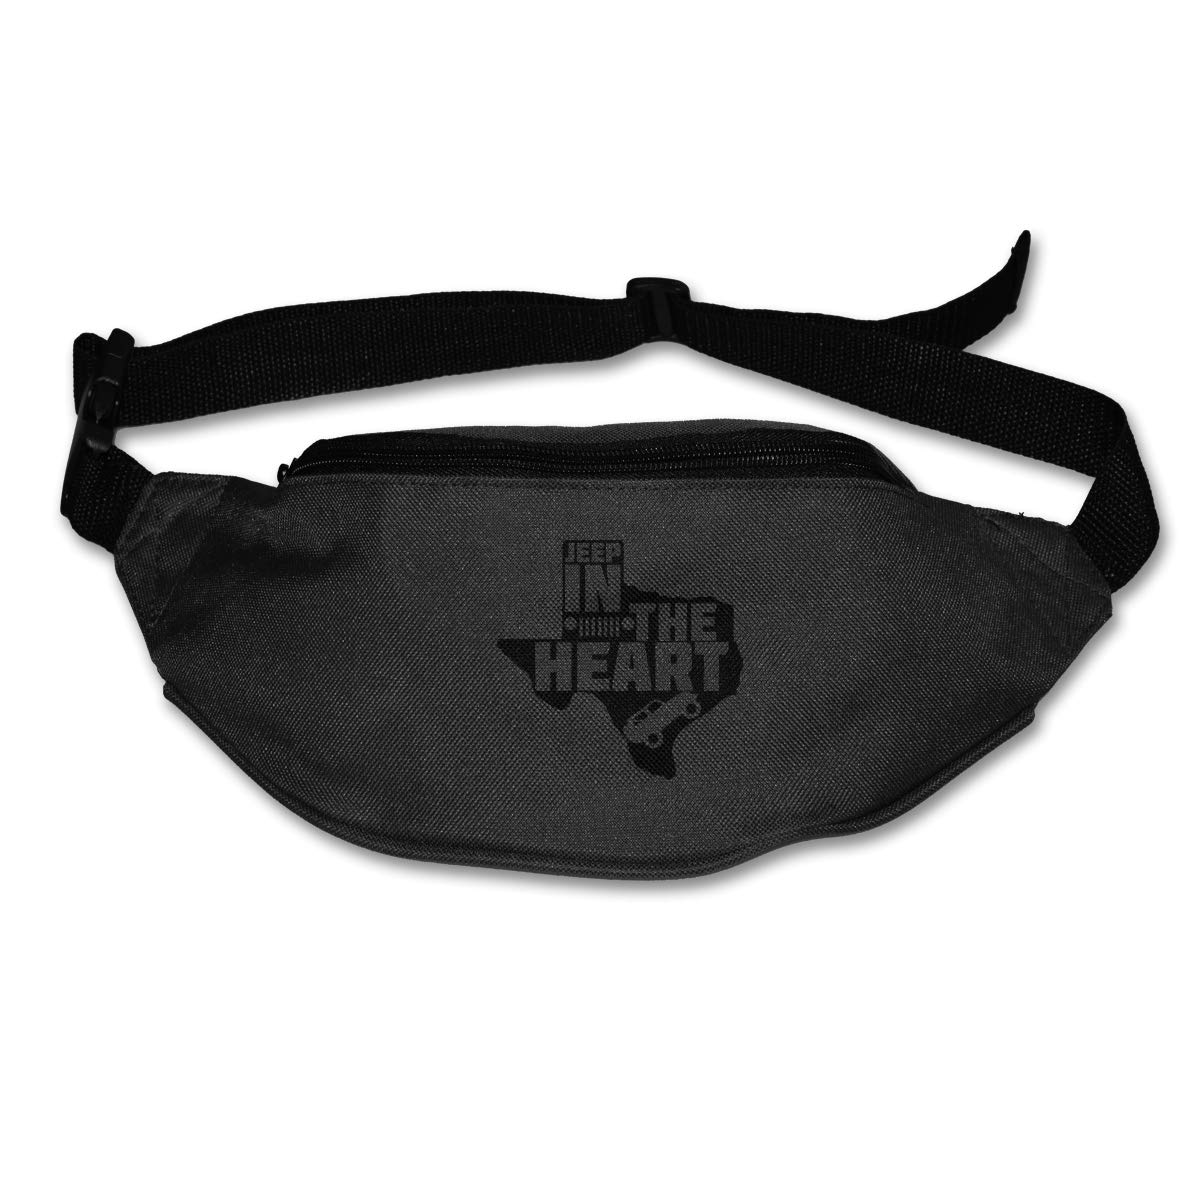 Jeep In The Heart Of Texas Sport Waist Bag Fanny Pack Adjustable For Hike